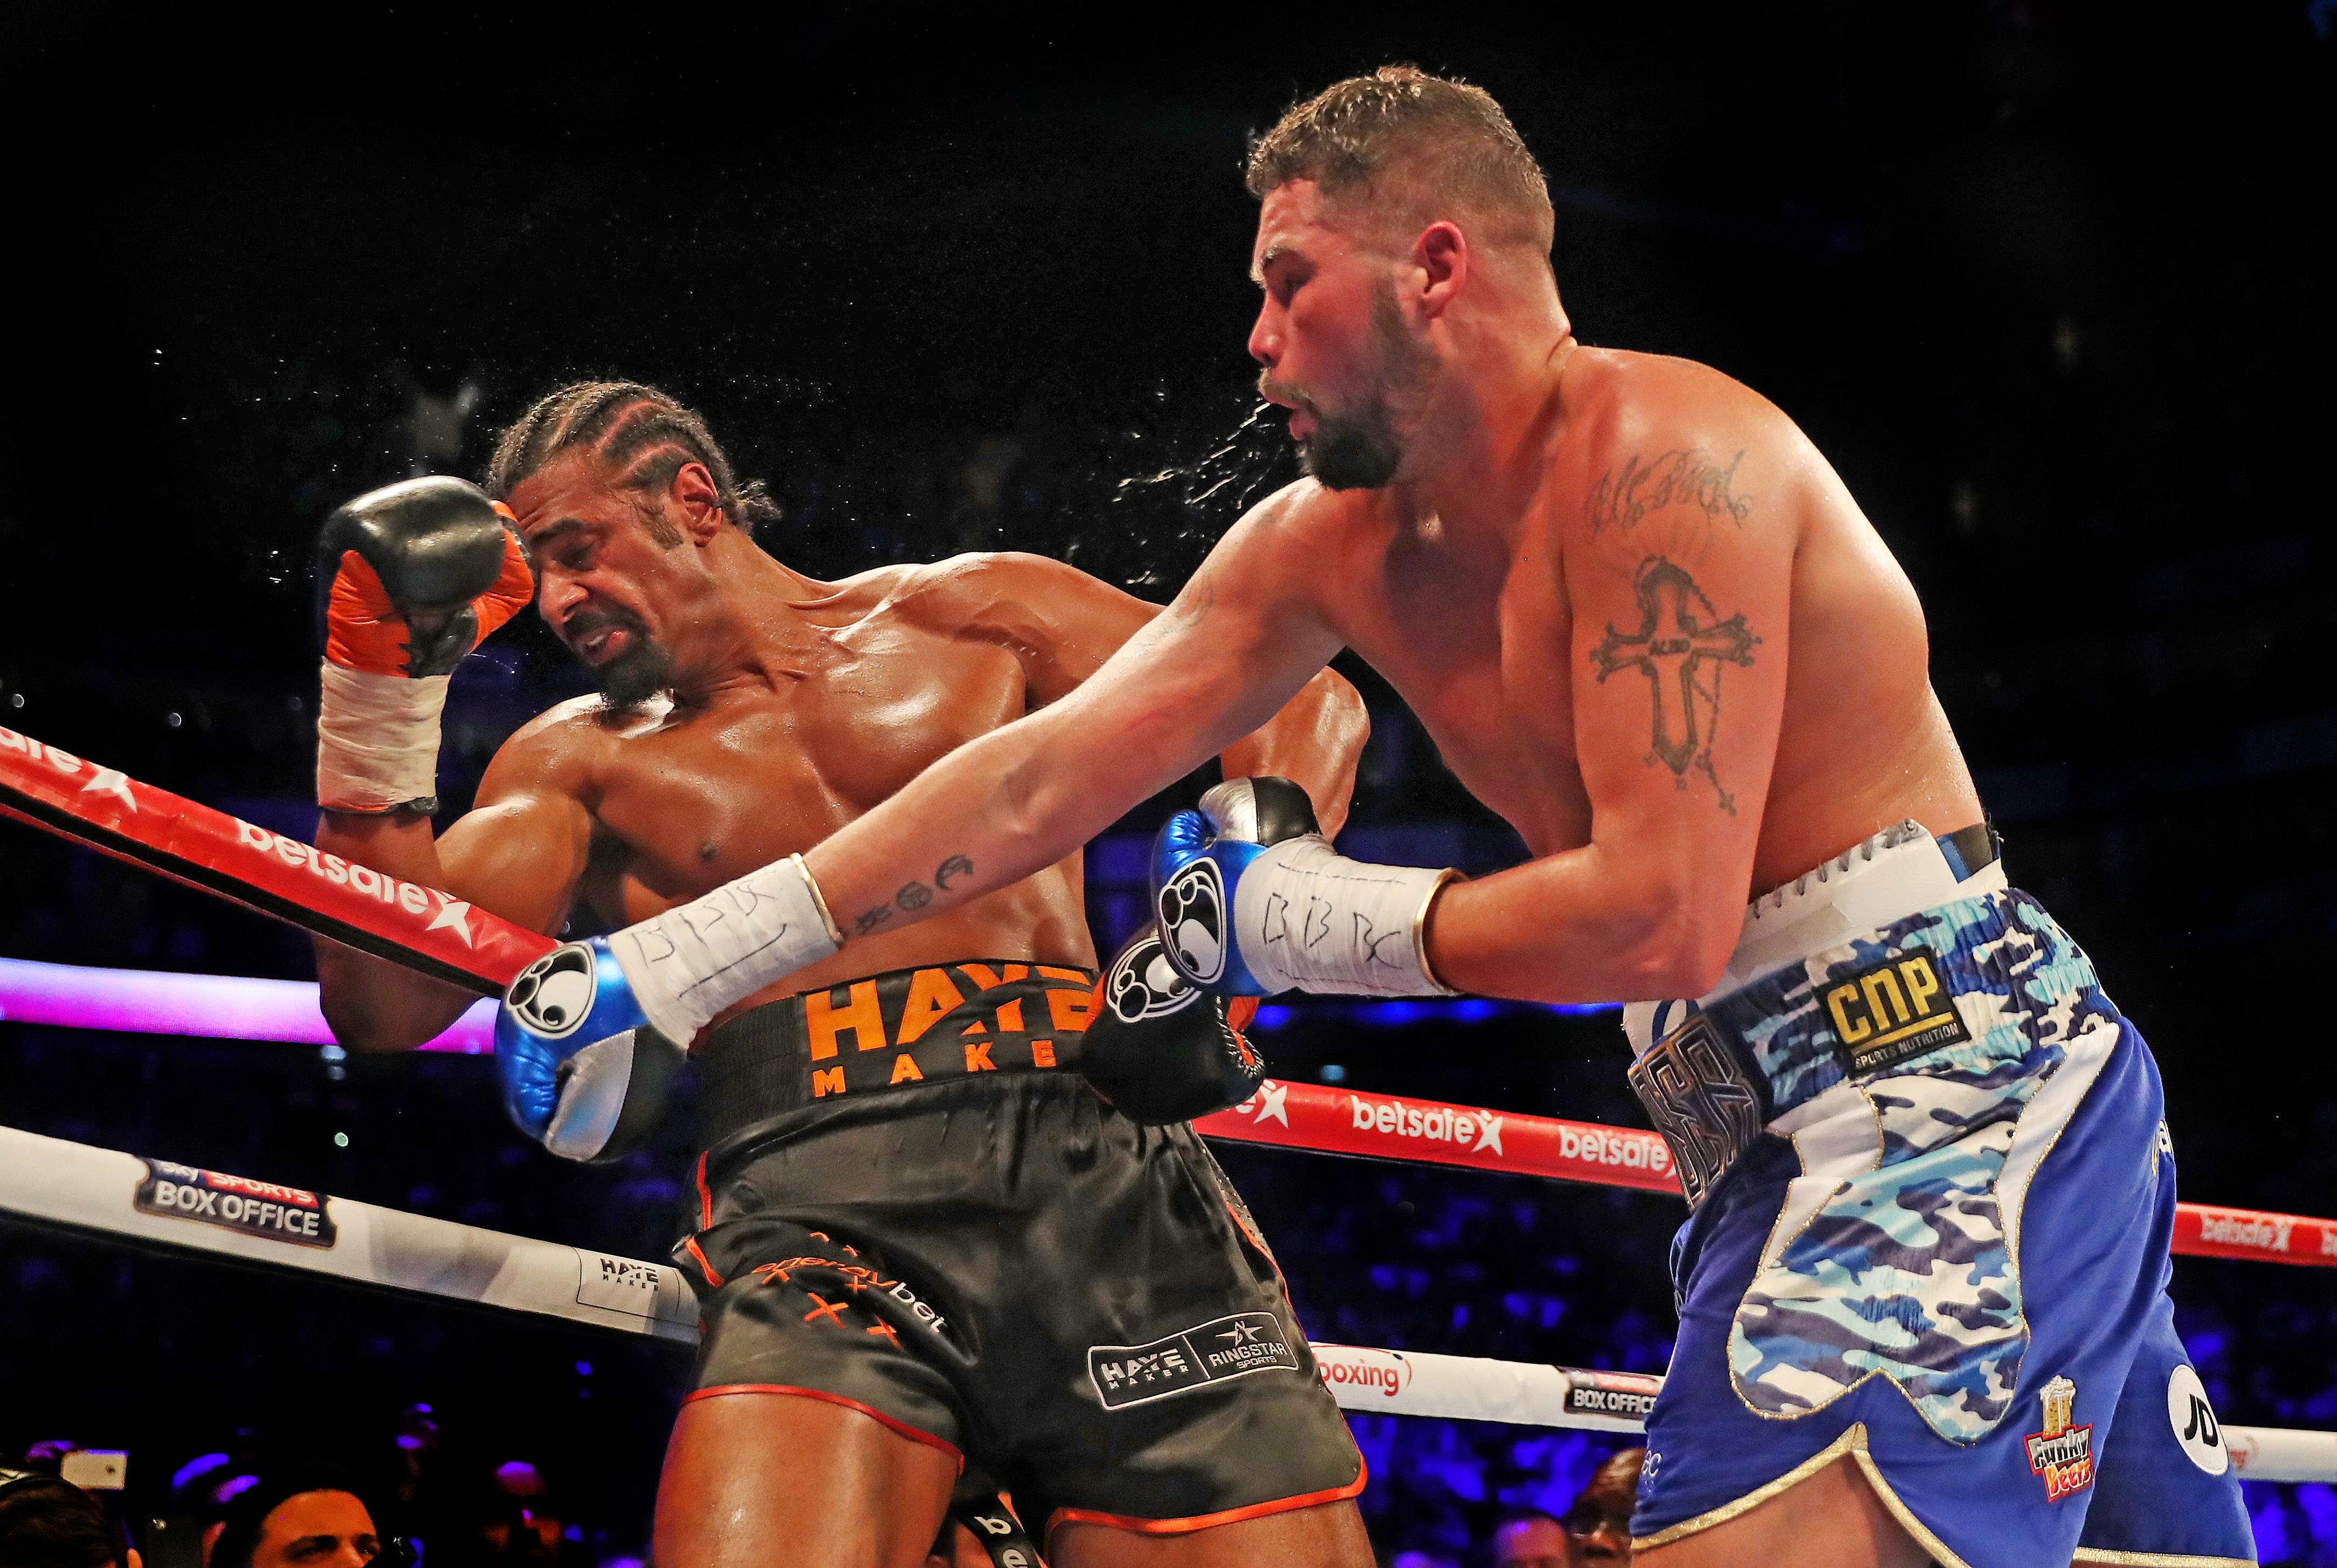 Bellew was a 6/1 underdog coming into the first fight